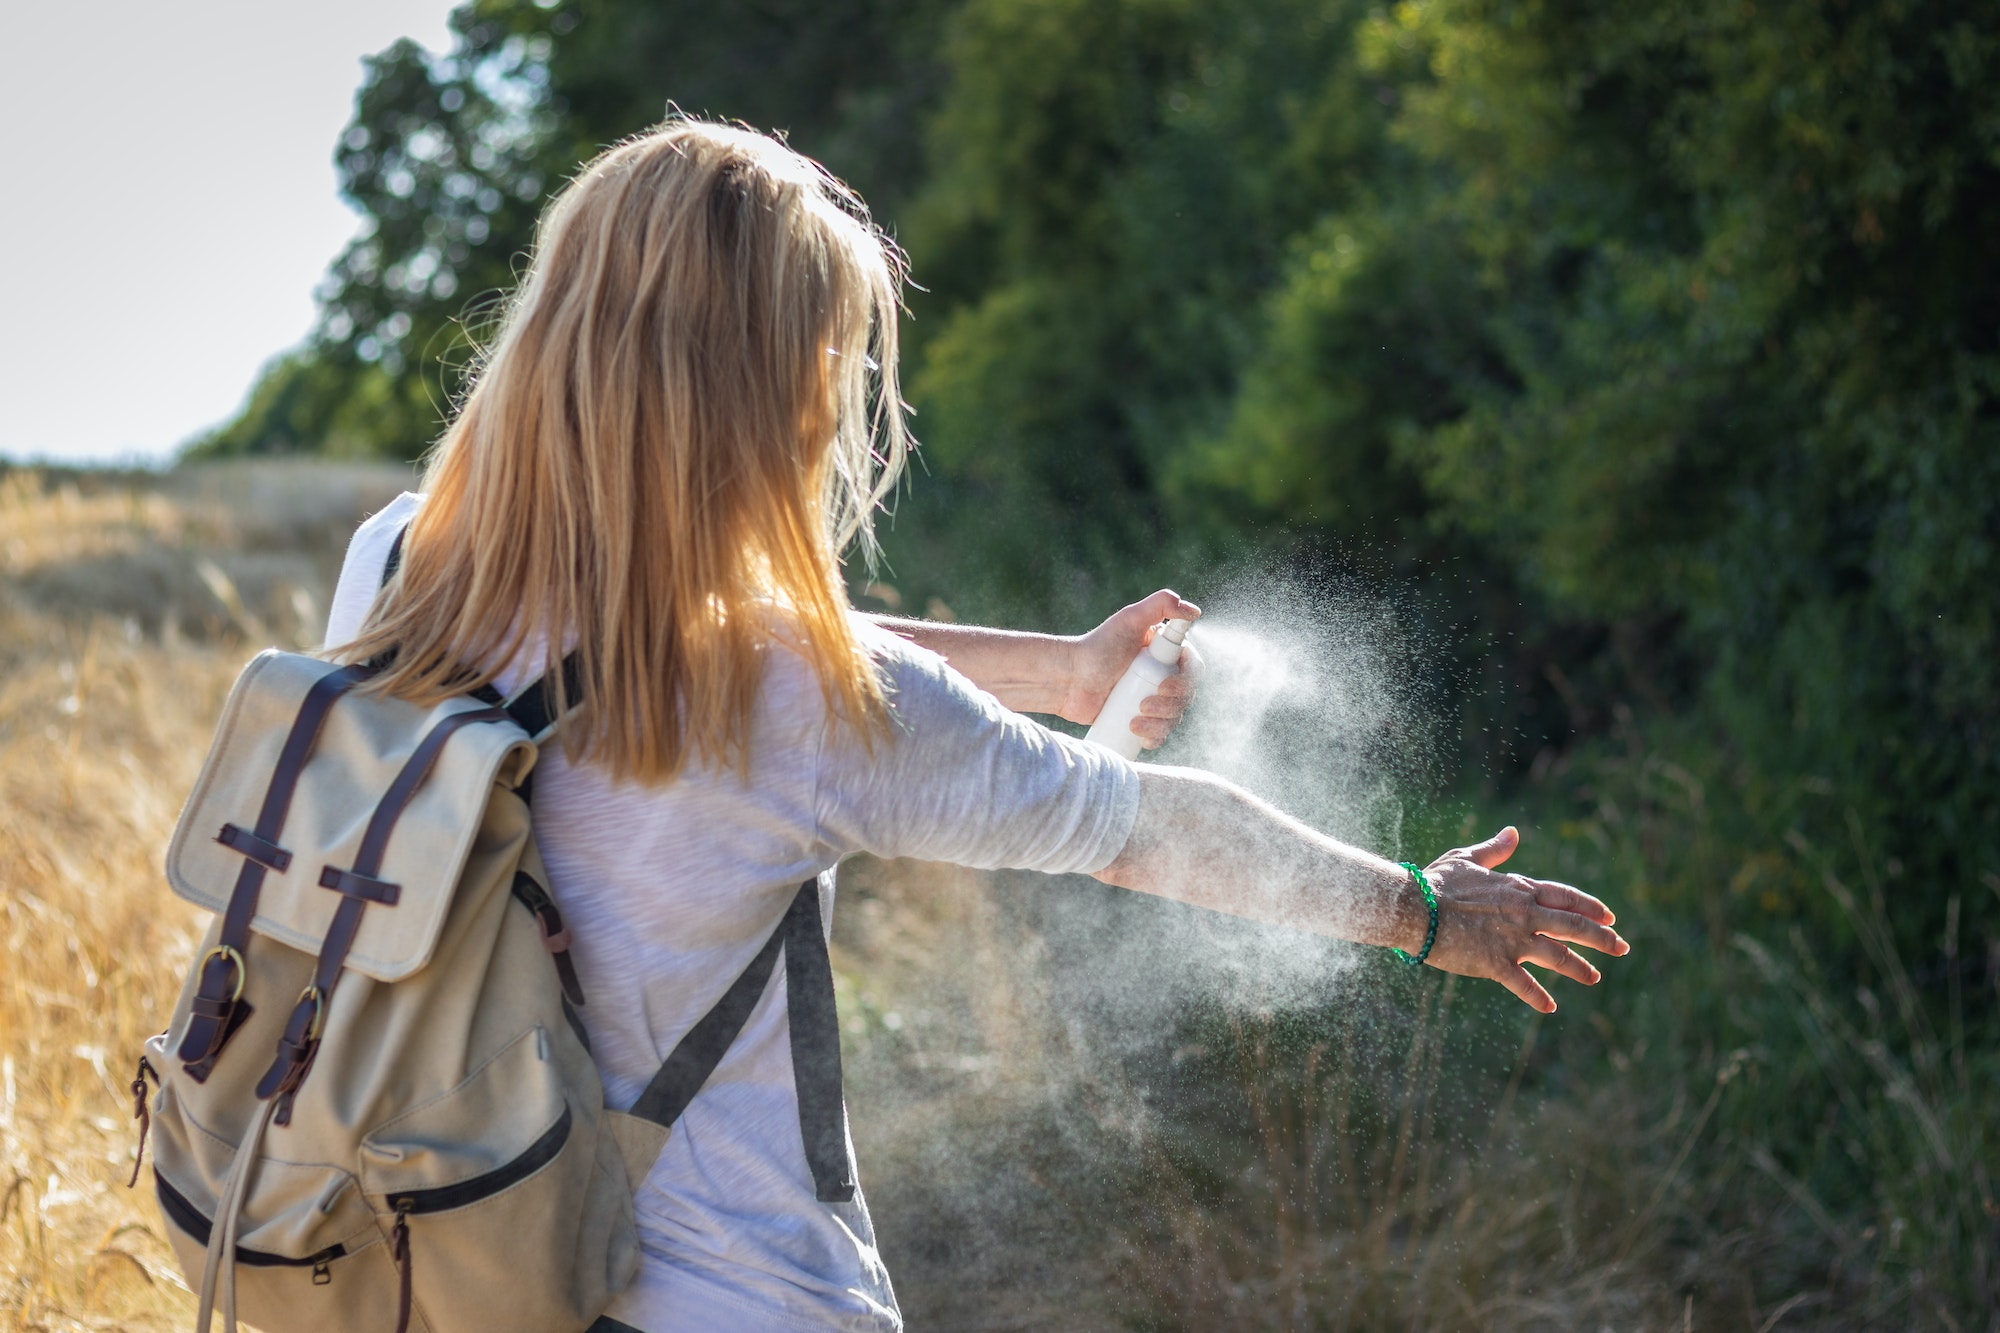 A person is outside in a grassy area near some green trees.  The person is facing away from the camera.  The person has long, light-colored hair, a white long-sleeve shirt, and a backpack.  The person is holding a container of bug repellent and spraying the exposed skin on their arm.